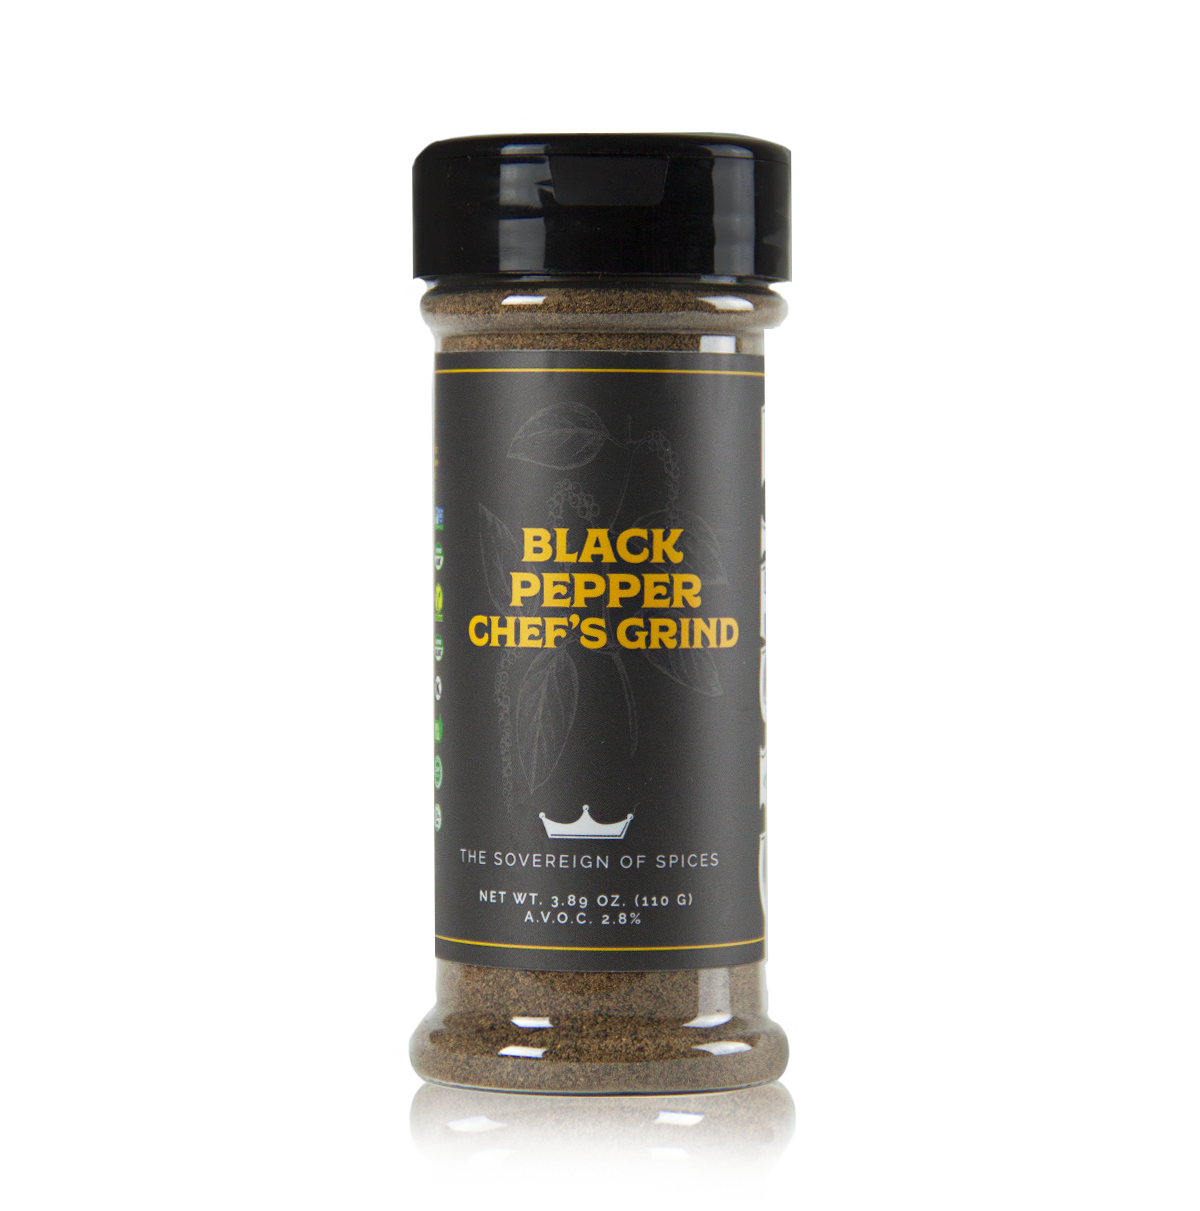 BLACK PEPPER CHEF'S GRIND